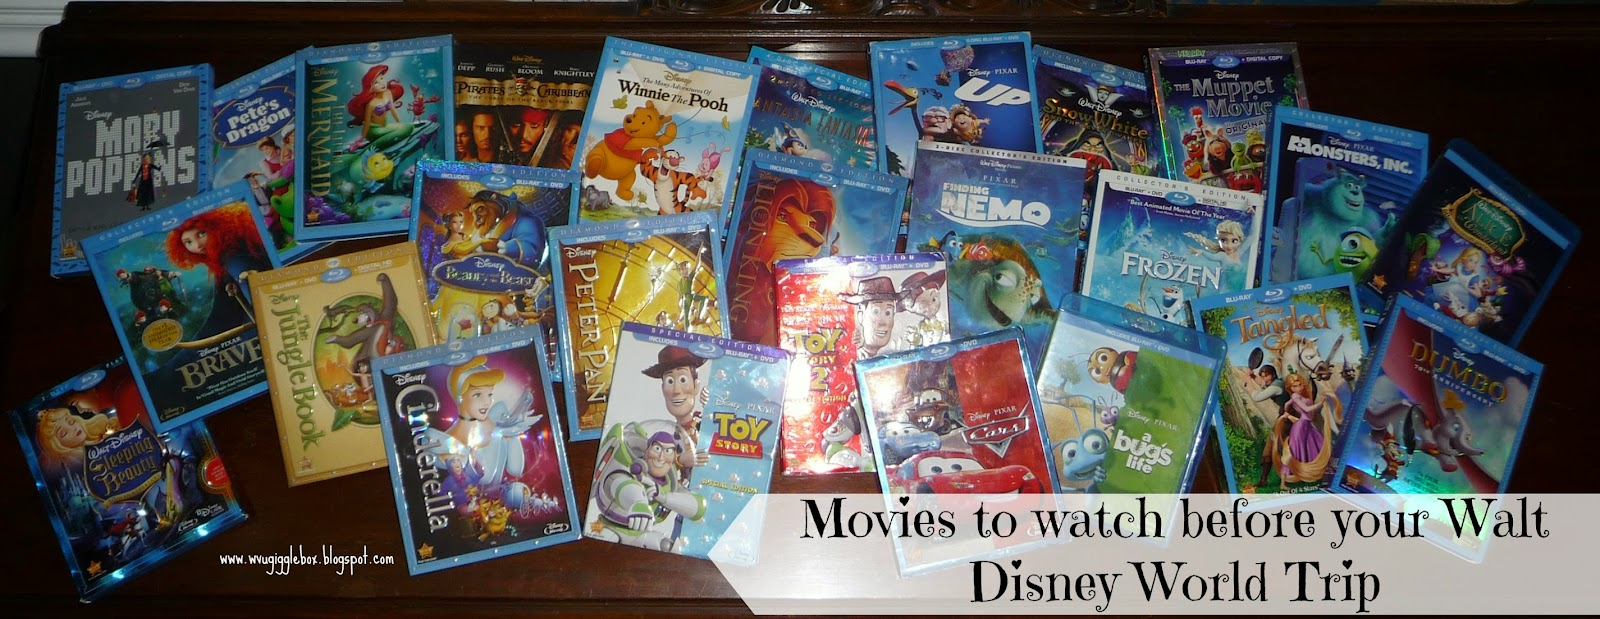 Walt Disney World vacation, Disney movies, movies to prepare for Walt Disney World,